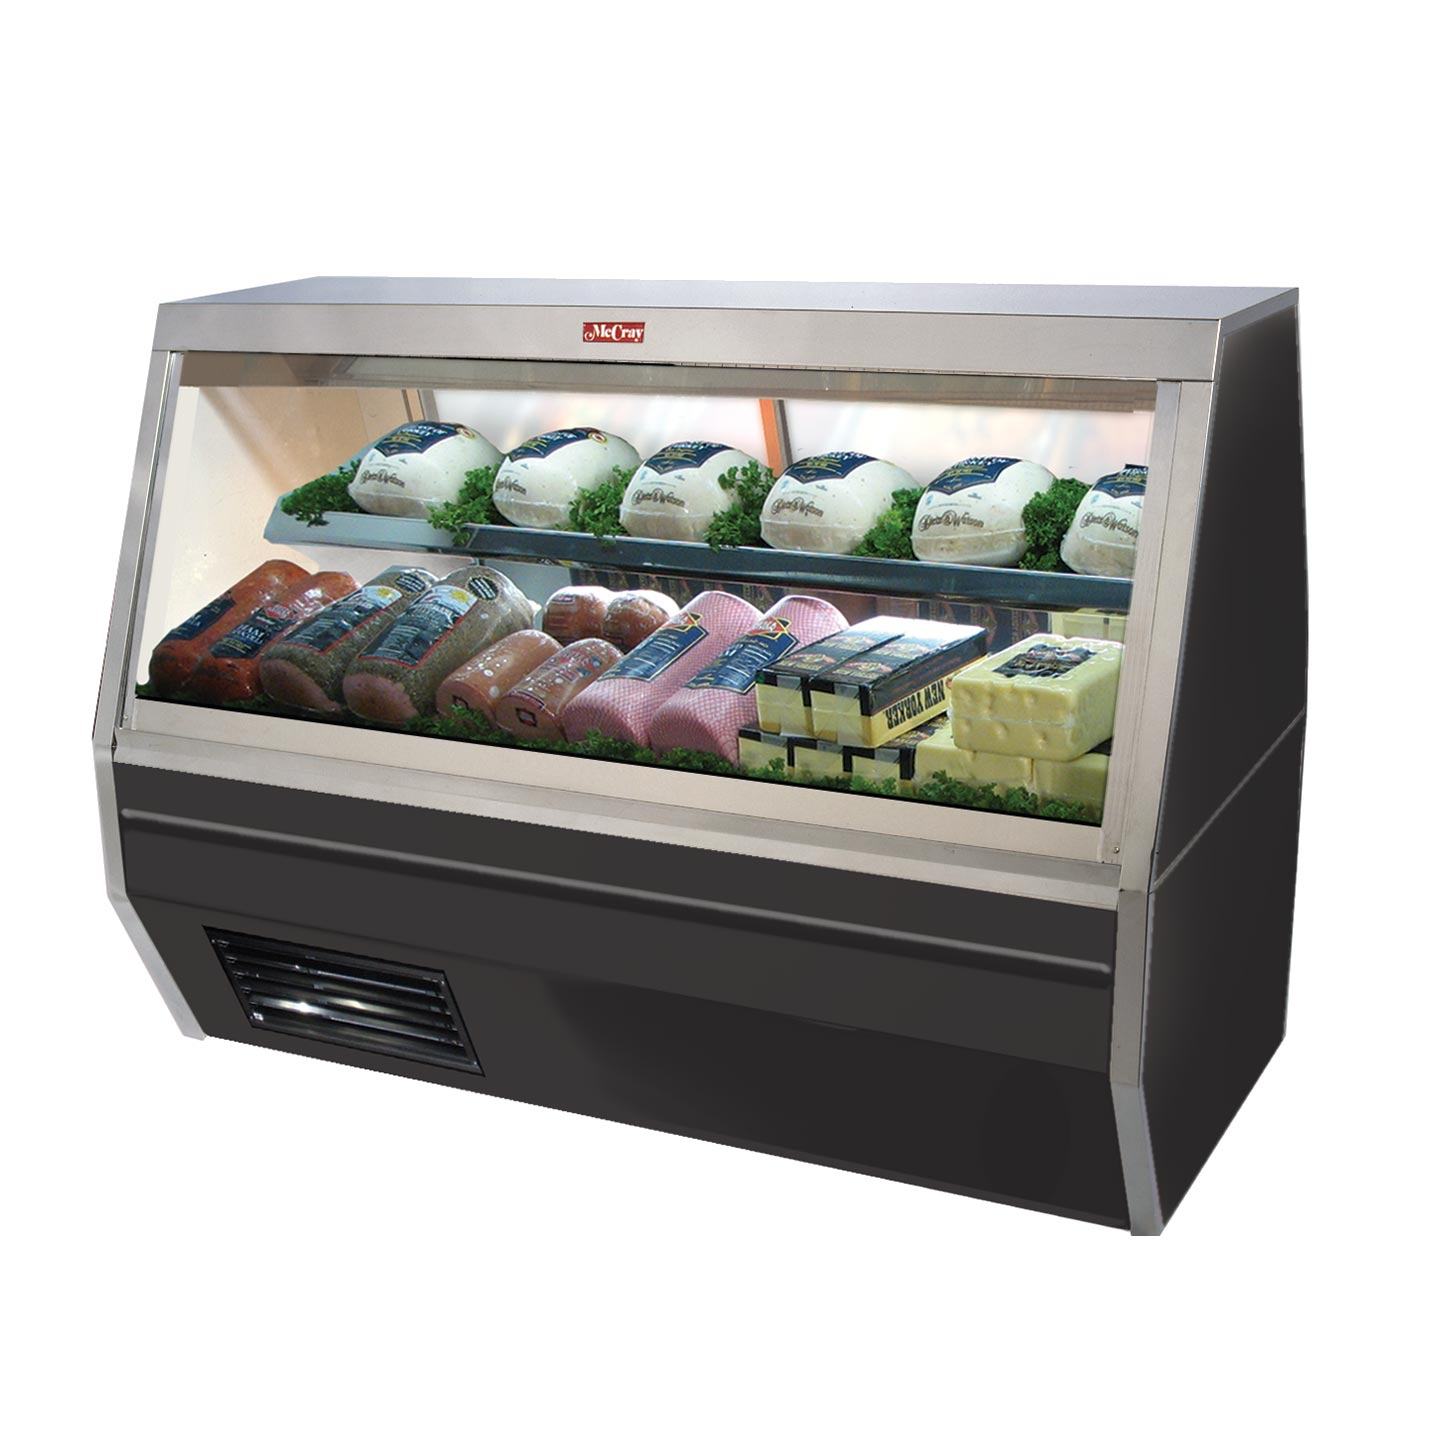 Howard-McCray SC-CDS35-8-BE-LED display case, refrigerated deli